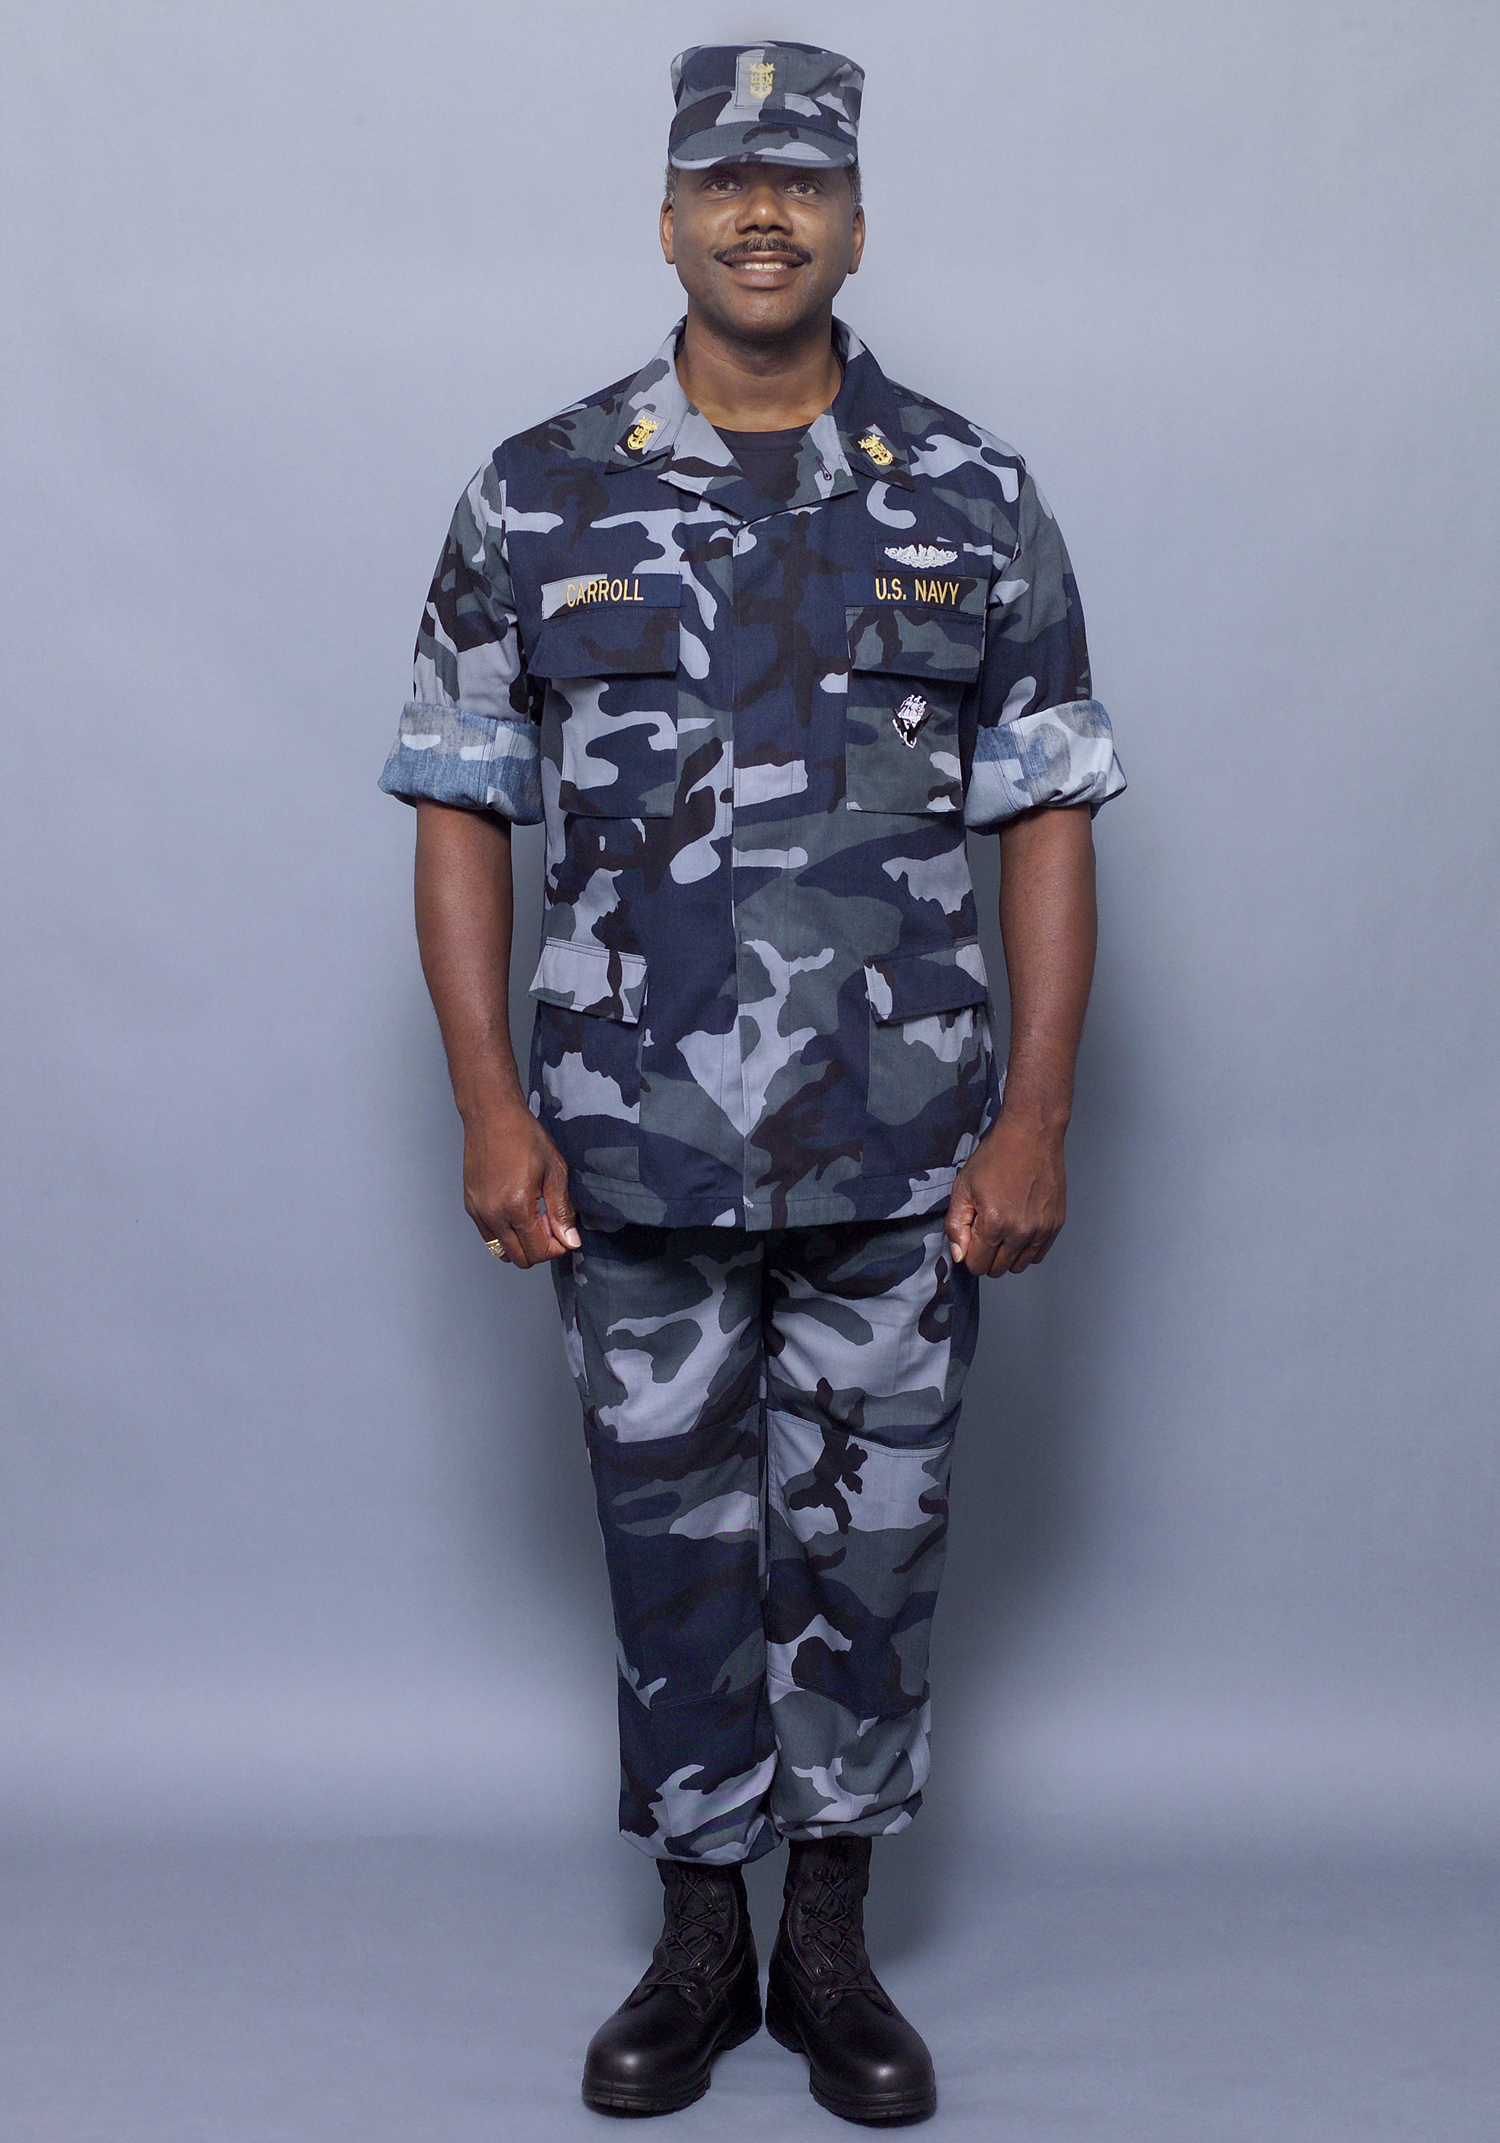 0000X-005 The Navy introduced a set of concept working uniforms ...